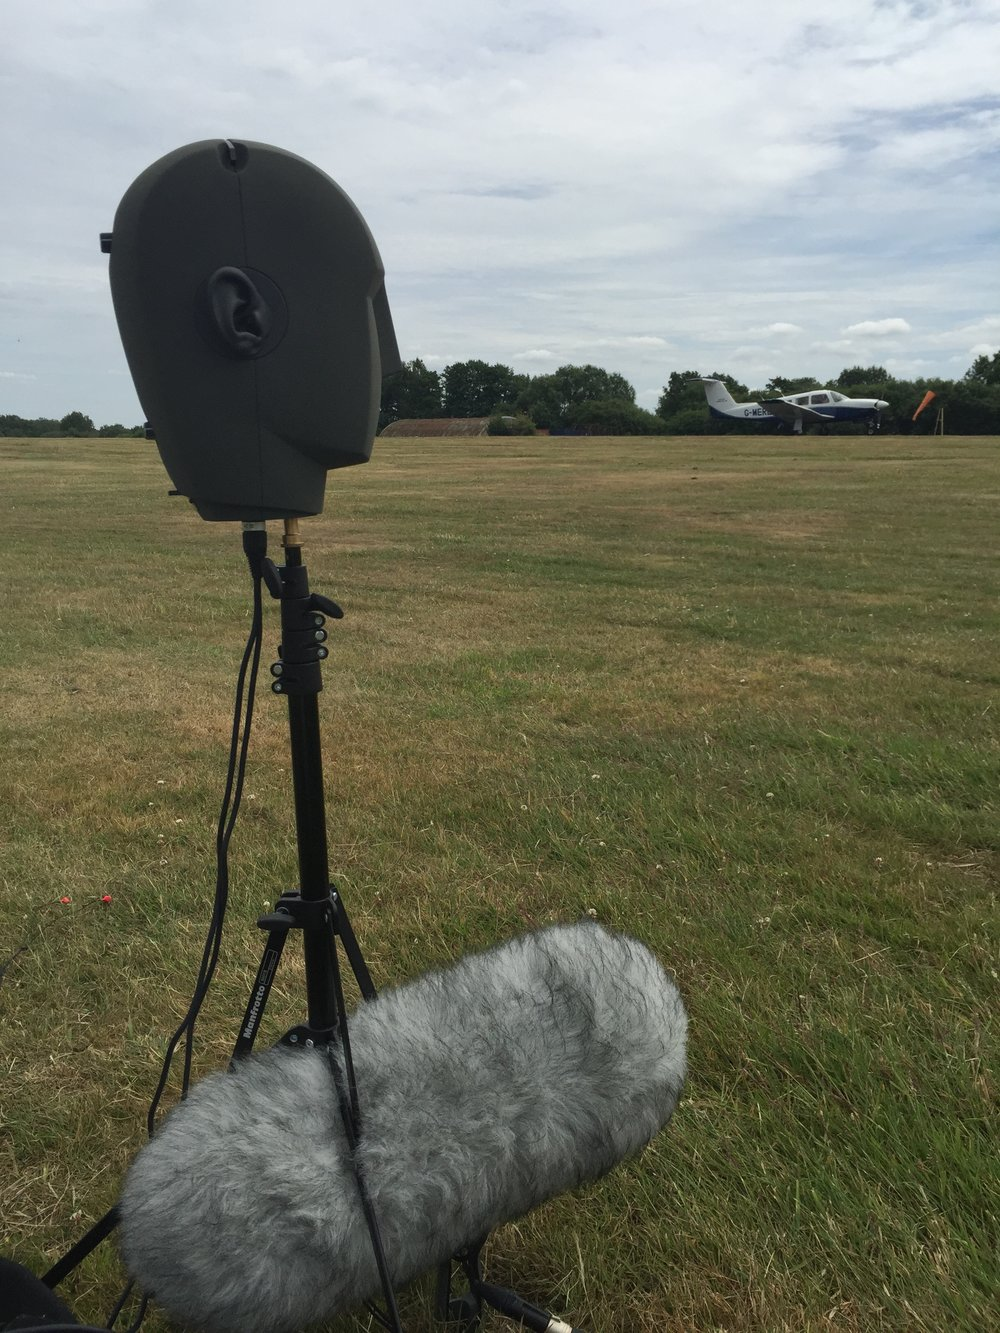 Recording Cessna fly-bys